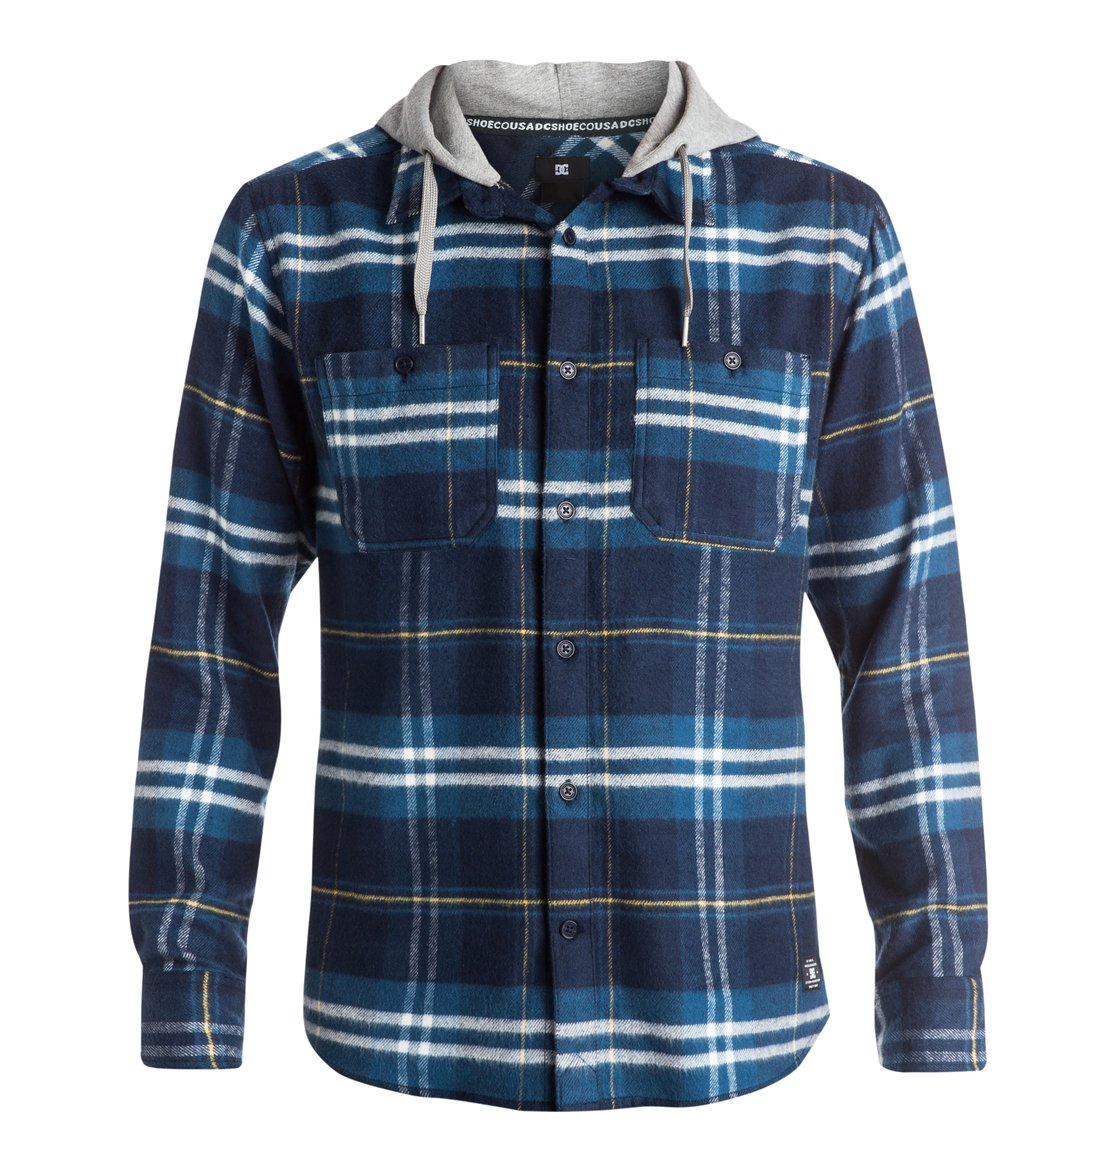 Our flannel shirts are made from high-quality Portuguese flannel, expertly brushed for softness. You'll love the softness and durability of our Chamois Cloth Shirts at a value you'll appreciate. Shop our fleece-lined shirts and flannel-lined shirts for the ultimate in comfort and warmth in cold weather.